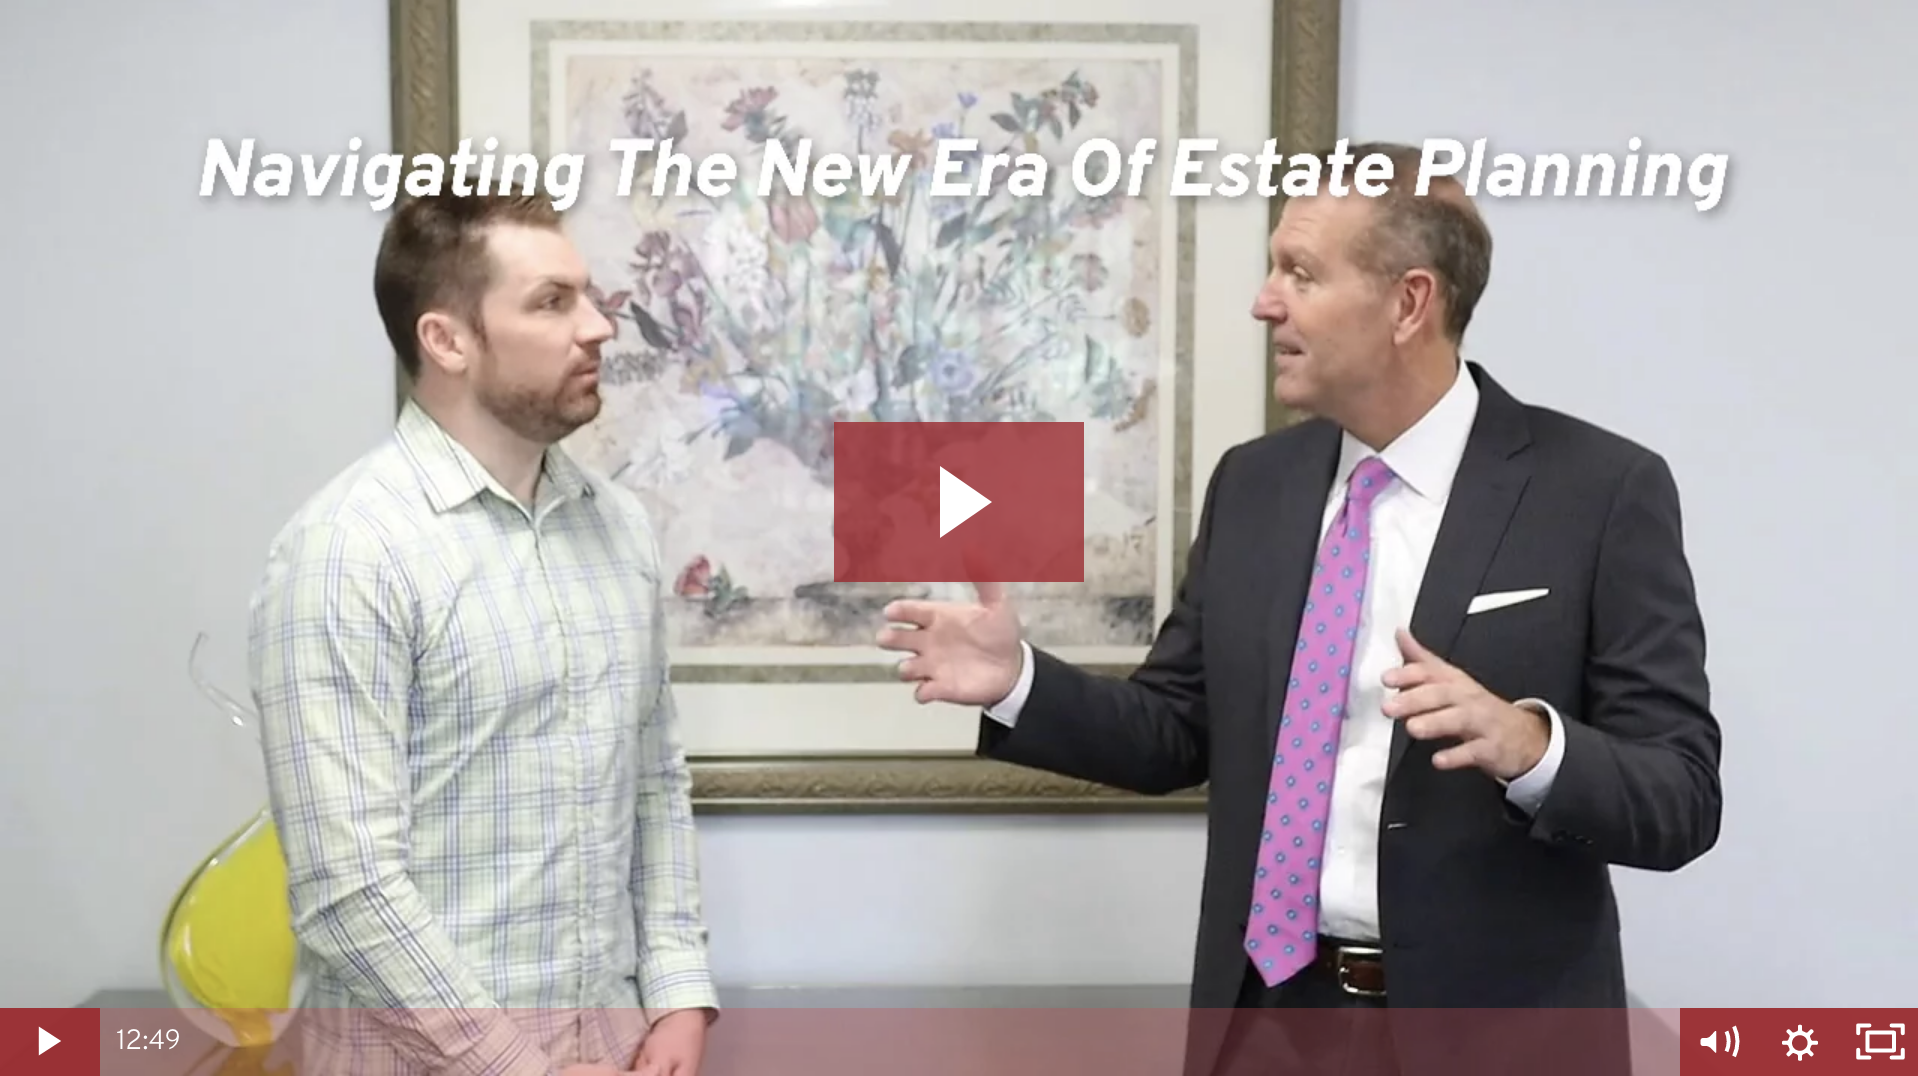 Navigating The New Era of Estate Planning